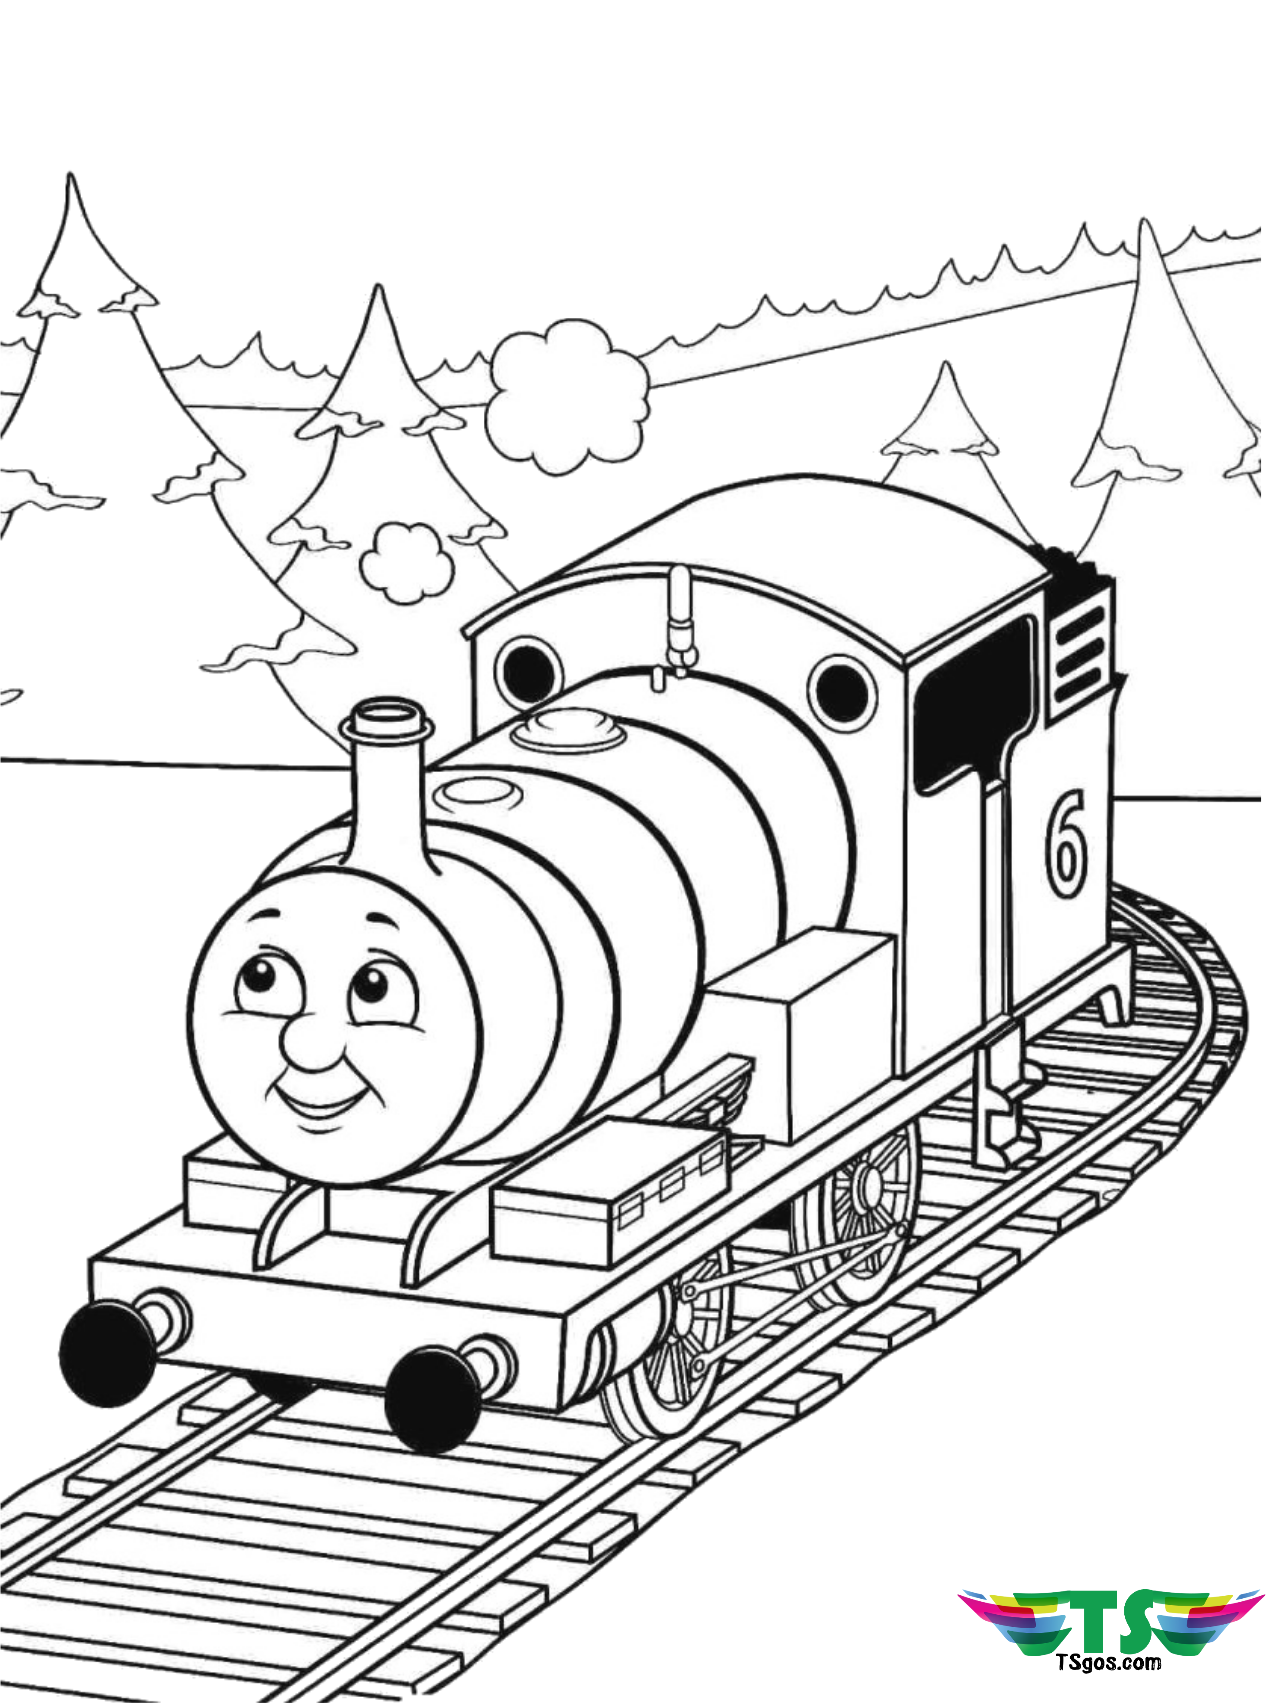 printable train coloring pages free printable train coloring pages coloring home train coloring printable pages